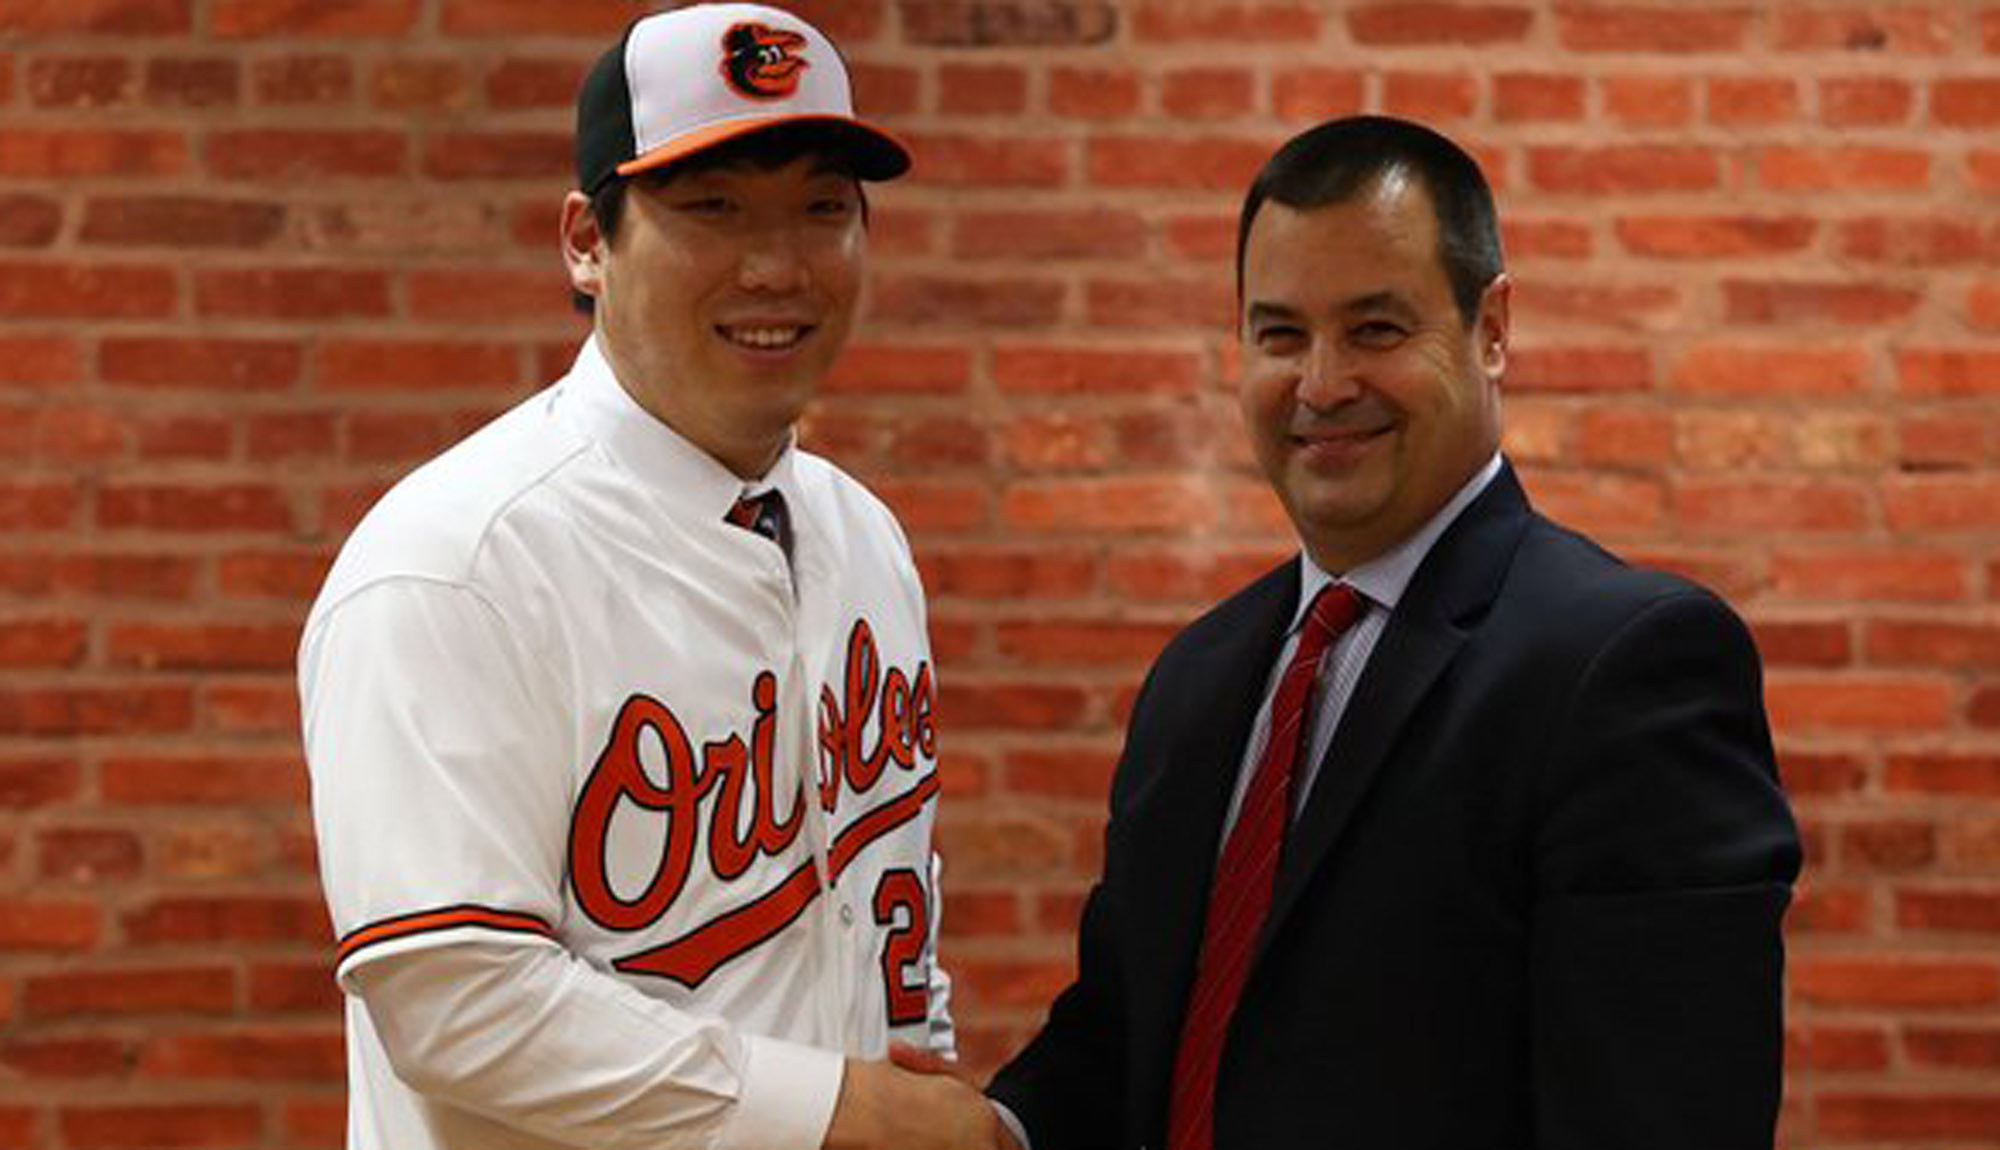 Bal-hyunsoo-kim-could-have-big-impact-in-debut-per-orioles-brass-and-statistical-projections-20160212